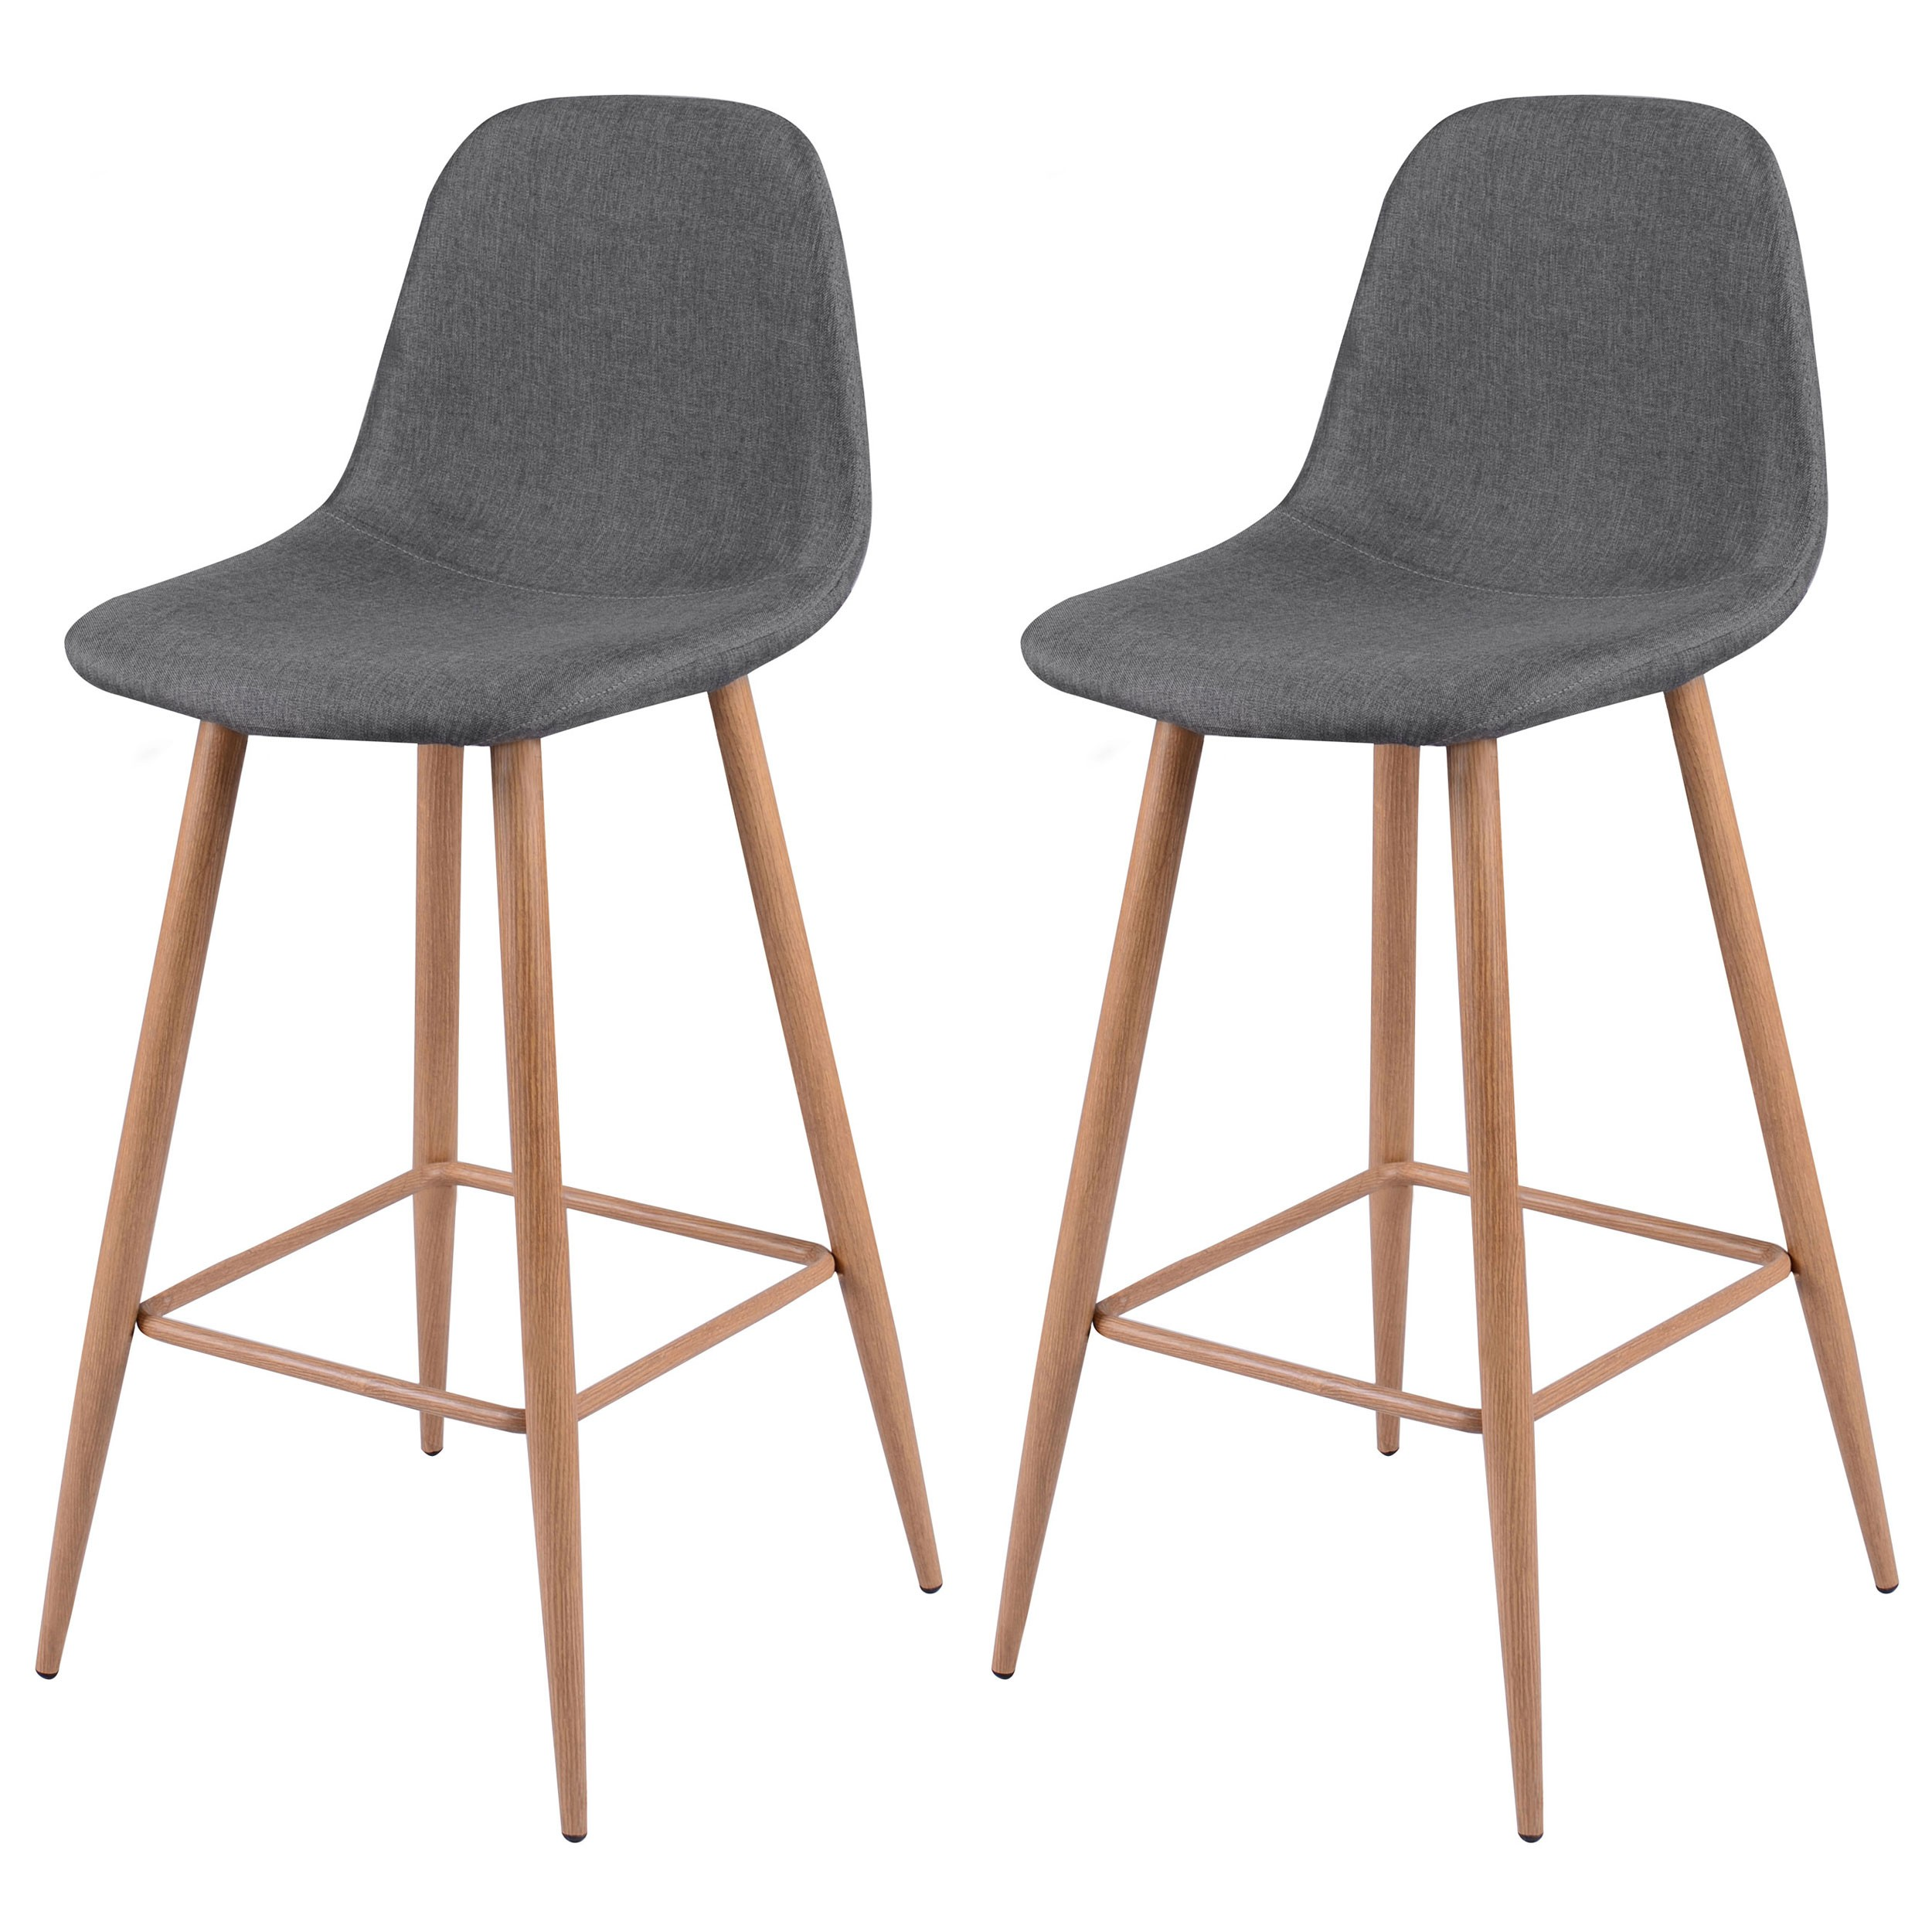 tabouret de bar fredrik gris lot de 2 optez pour les tabourets de bar fredrik gris lot de 2. Black Bedroom Furniture Sets. Home Design Ideas